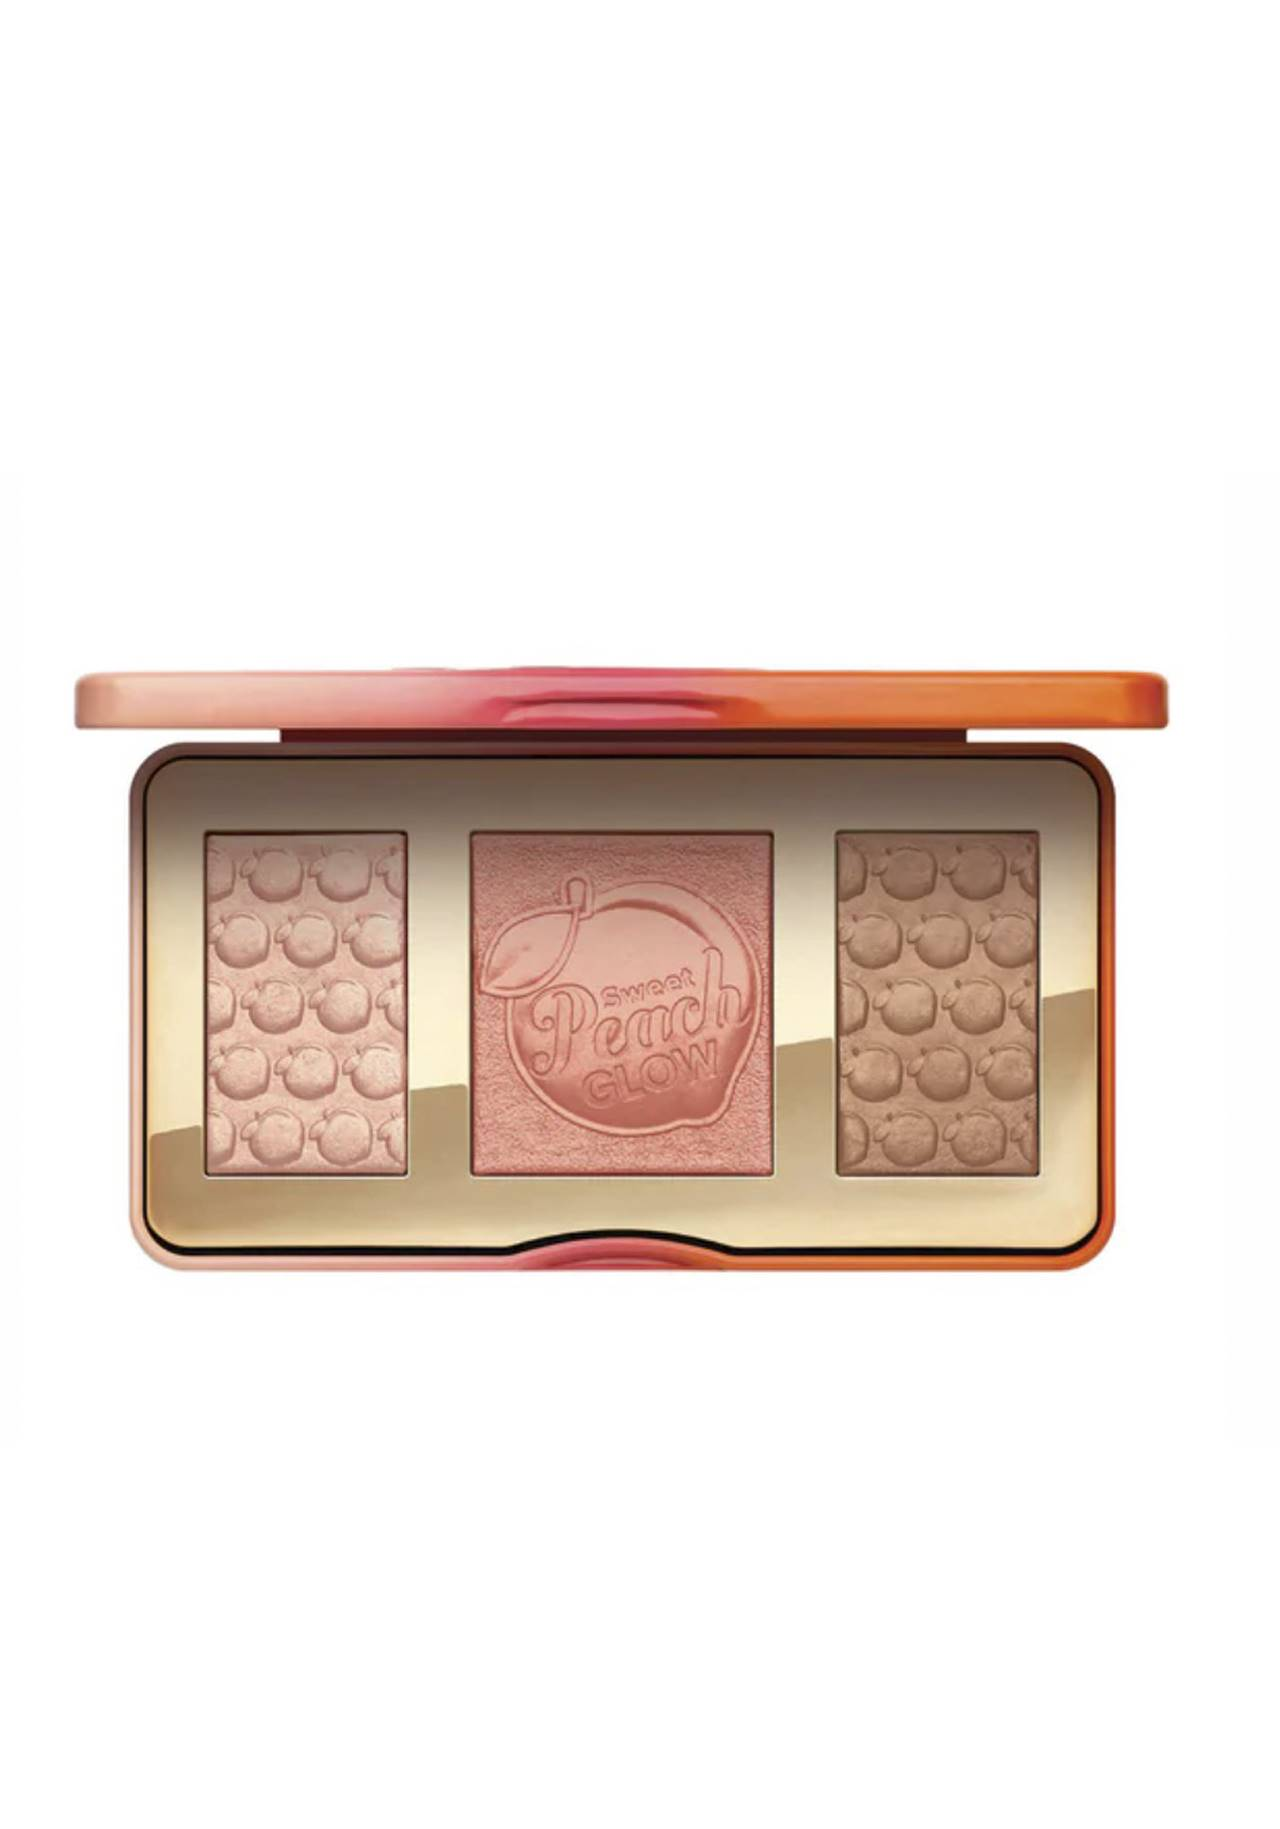 Paleta Sweet Peach Glow de Too Faced